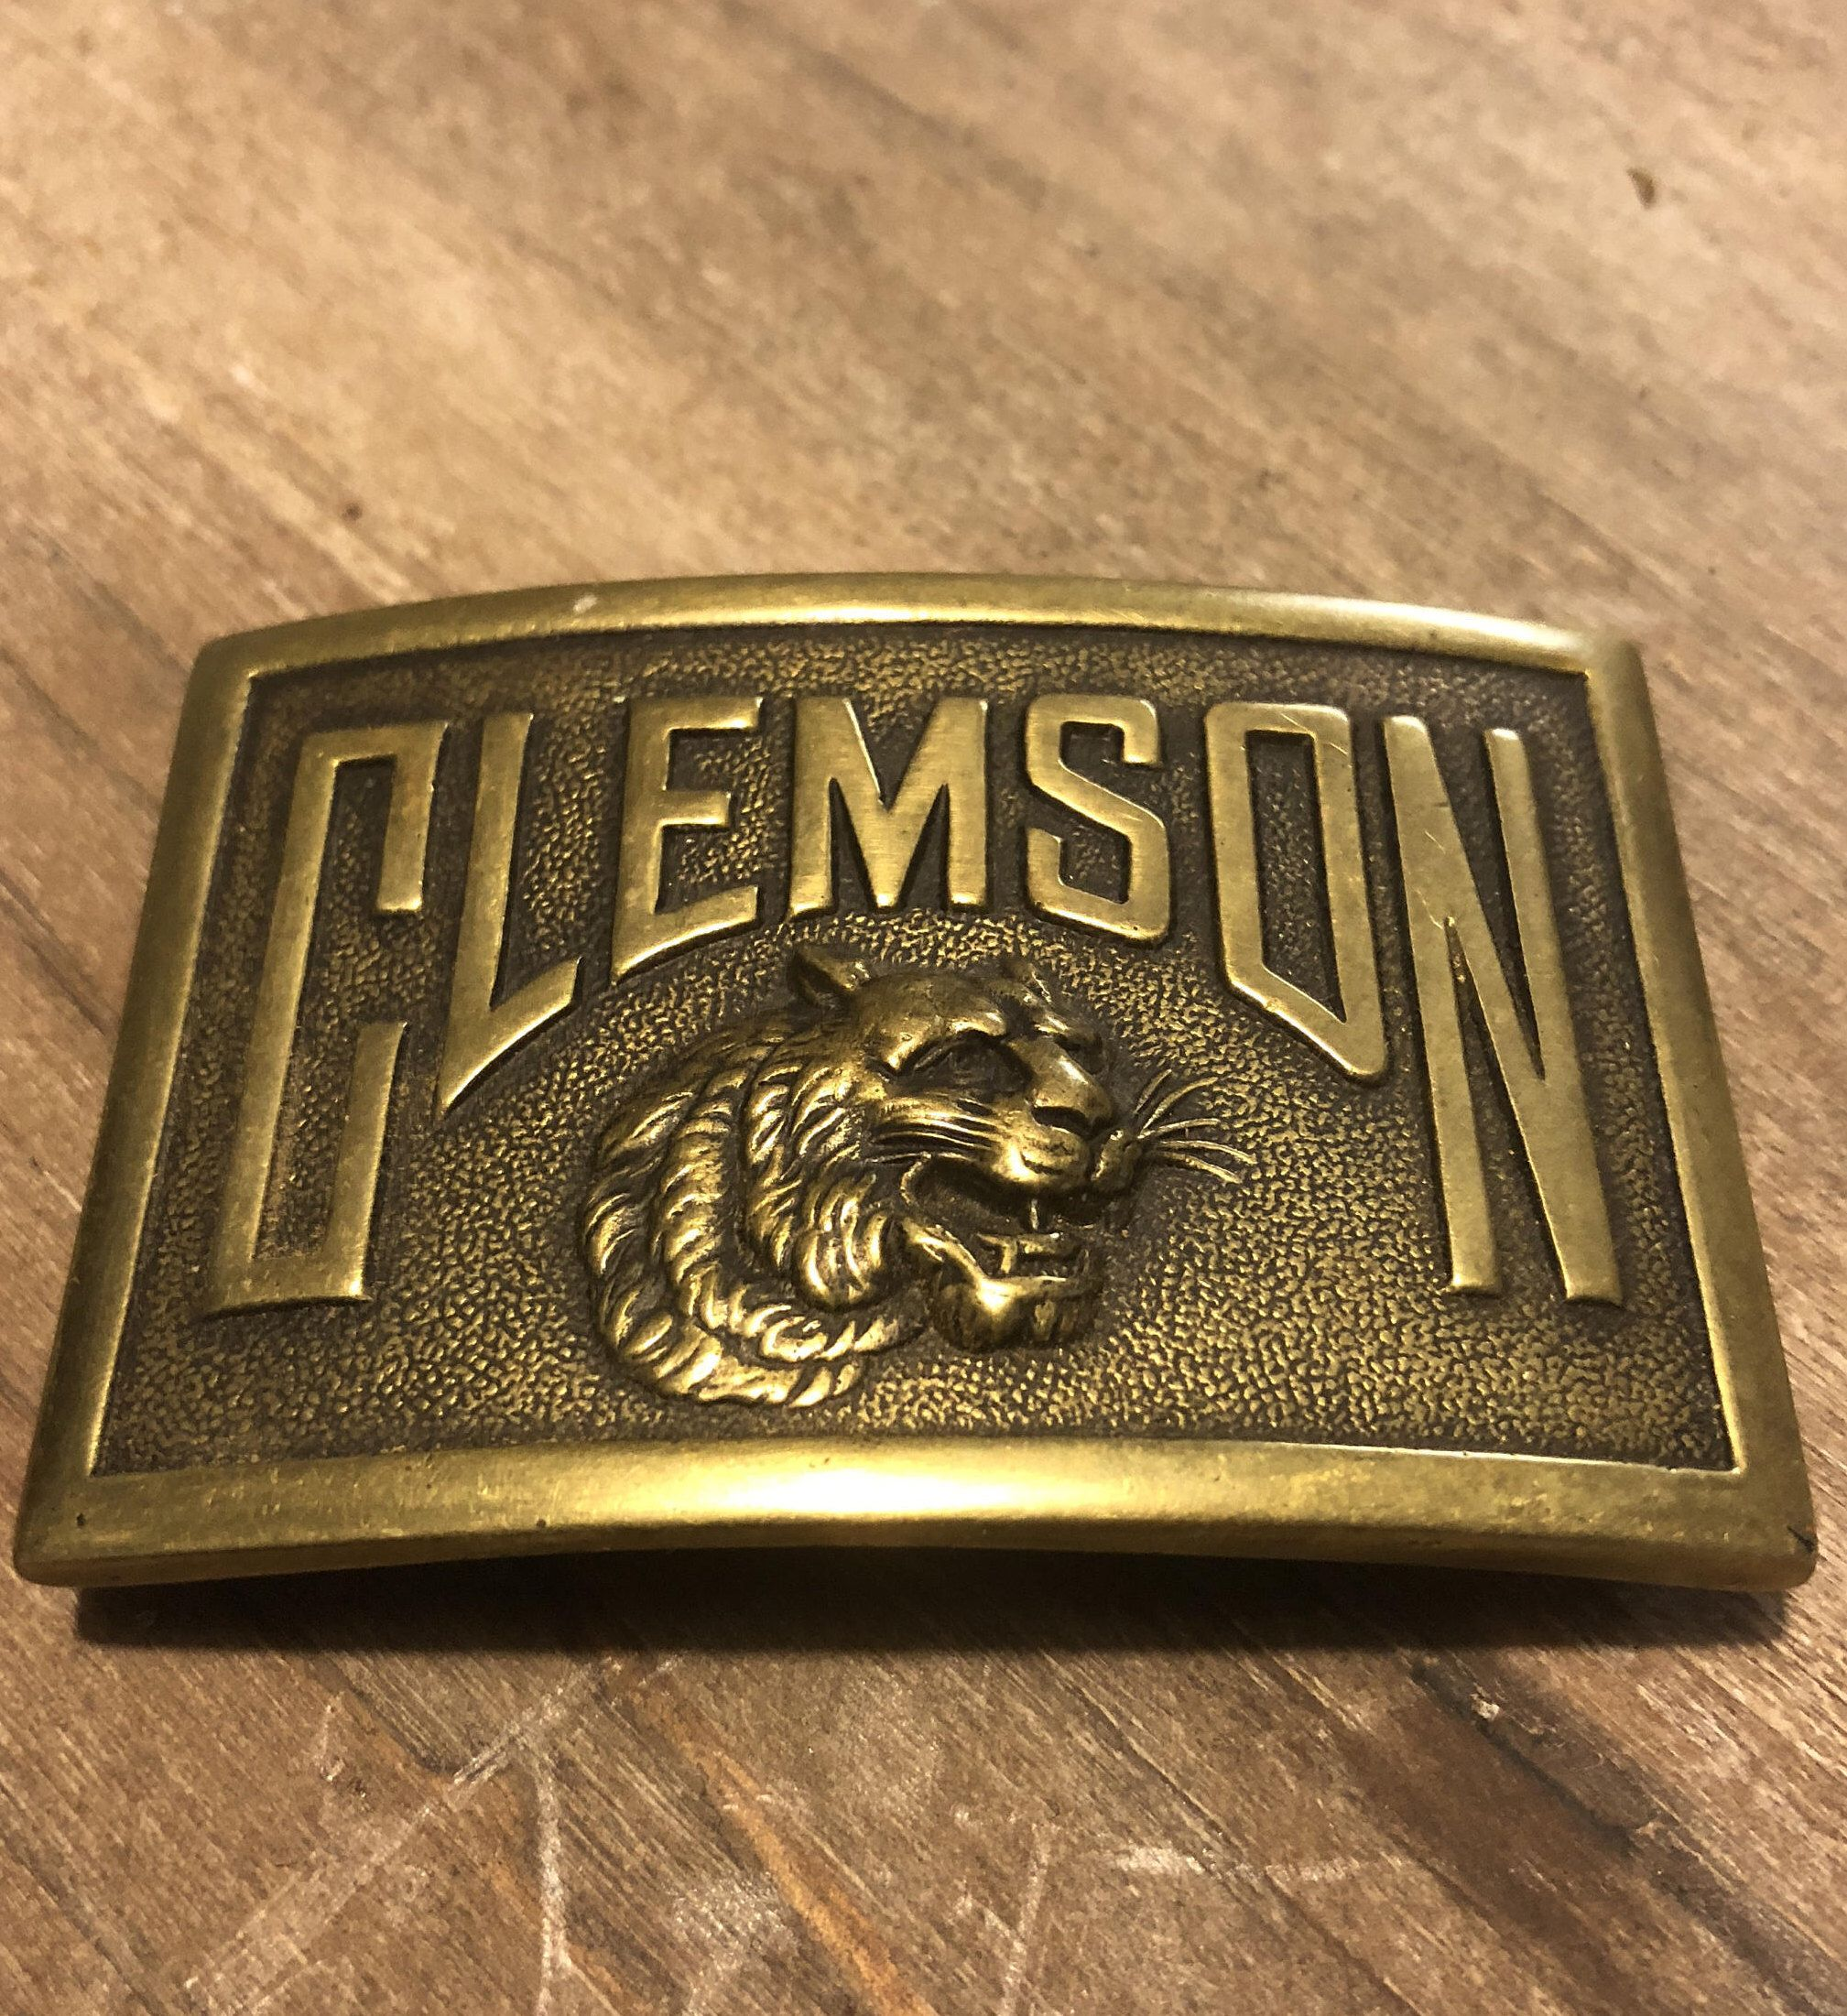 Vintage Clemson University Brass Belt Buckle FREE SHIPPING! by  CottonBranchMarket on Etsy https   b242095466c